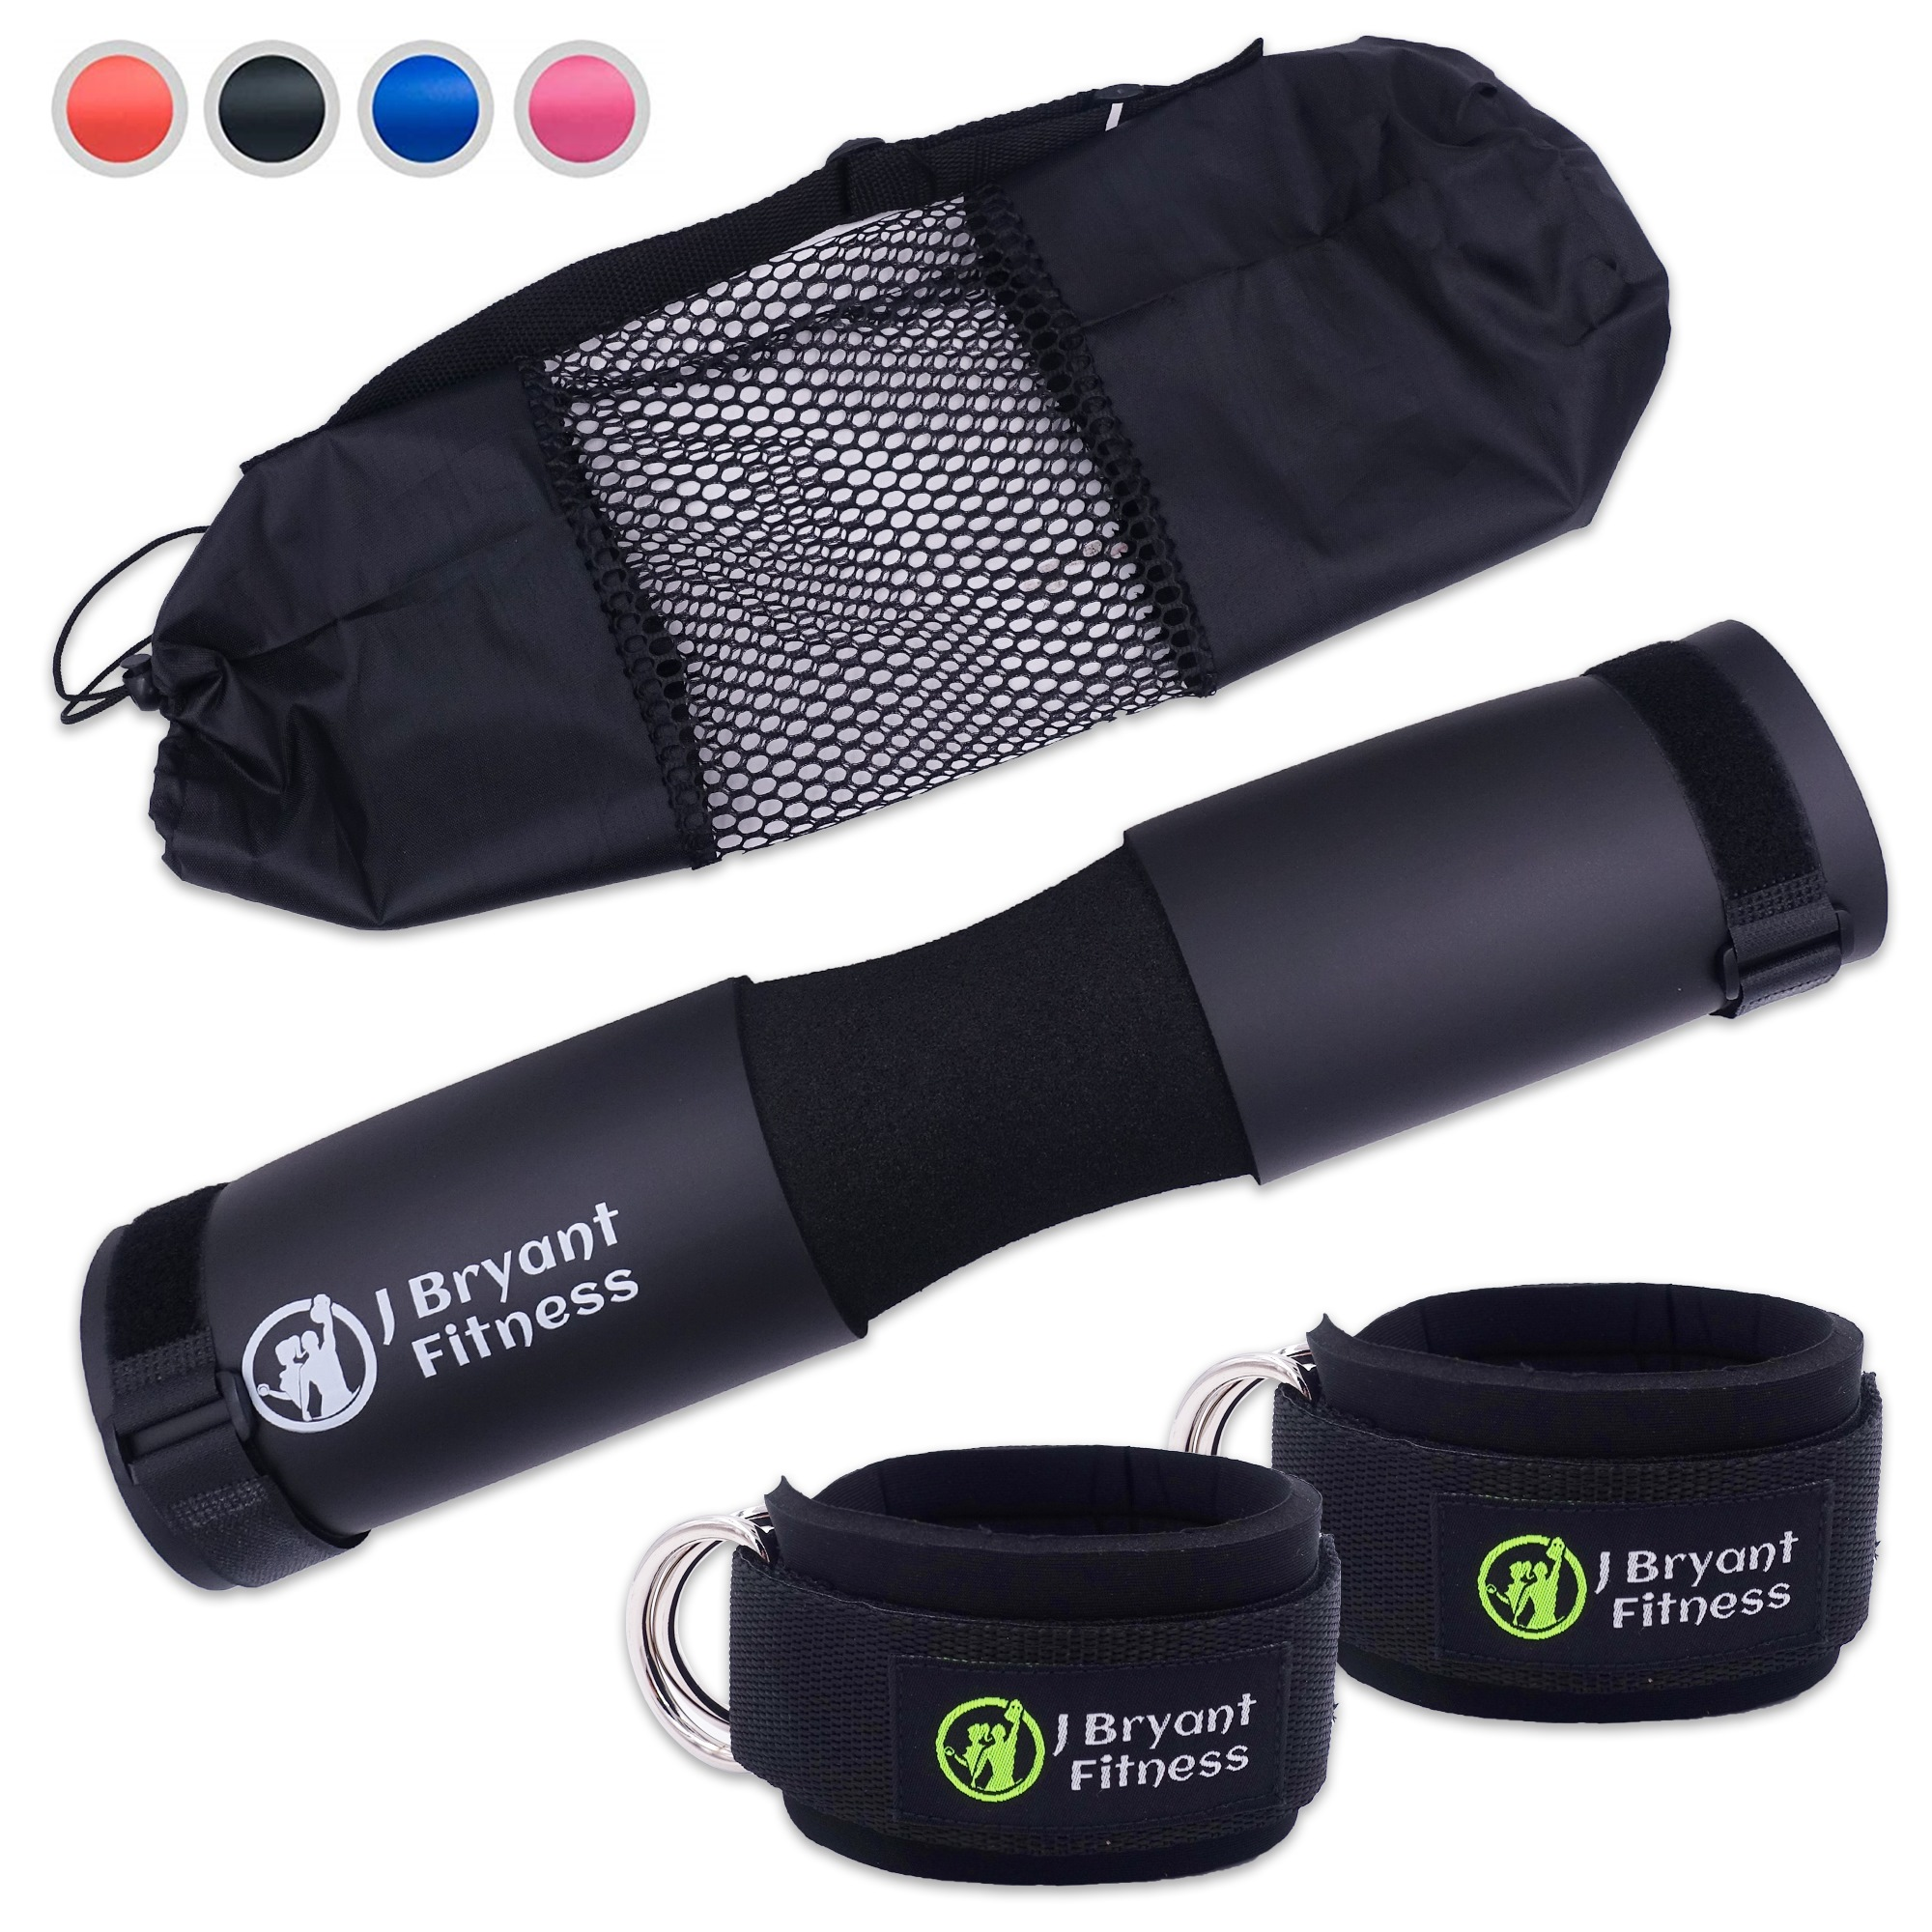 Fitness Foam Barbell Pad And Ankle Strap Set For Resistance Booty Gym Weight Lifting Hip Thrust Squat Neck Shoulder Protective